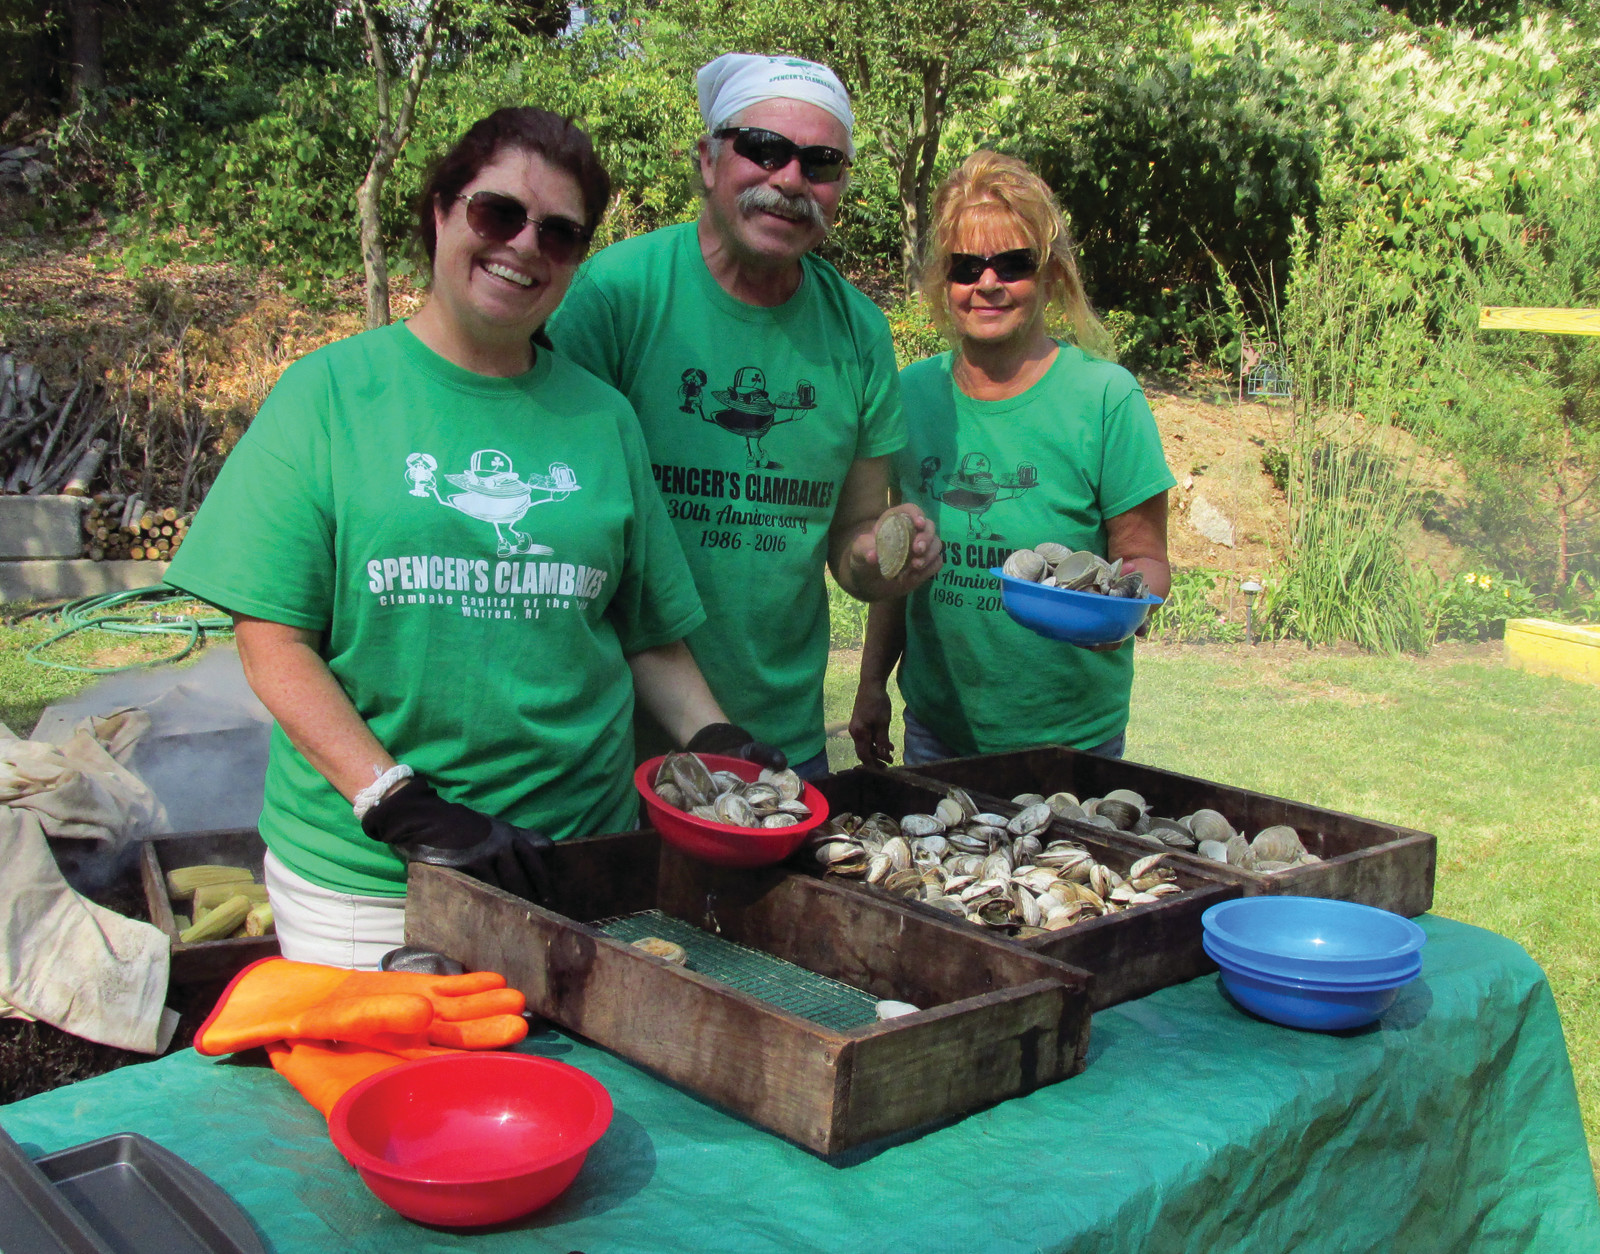 FAMILY FUN: The Hackley family – Kara, Spencer and Nancy – who own and Spencer's Clambakes, enjoy a lighter moment while they served steamers and little necks to people at Monday's special international clambake in Johnston.